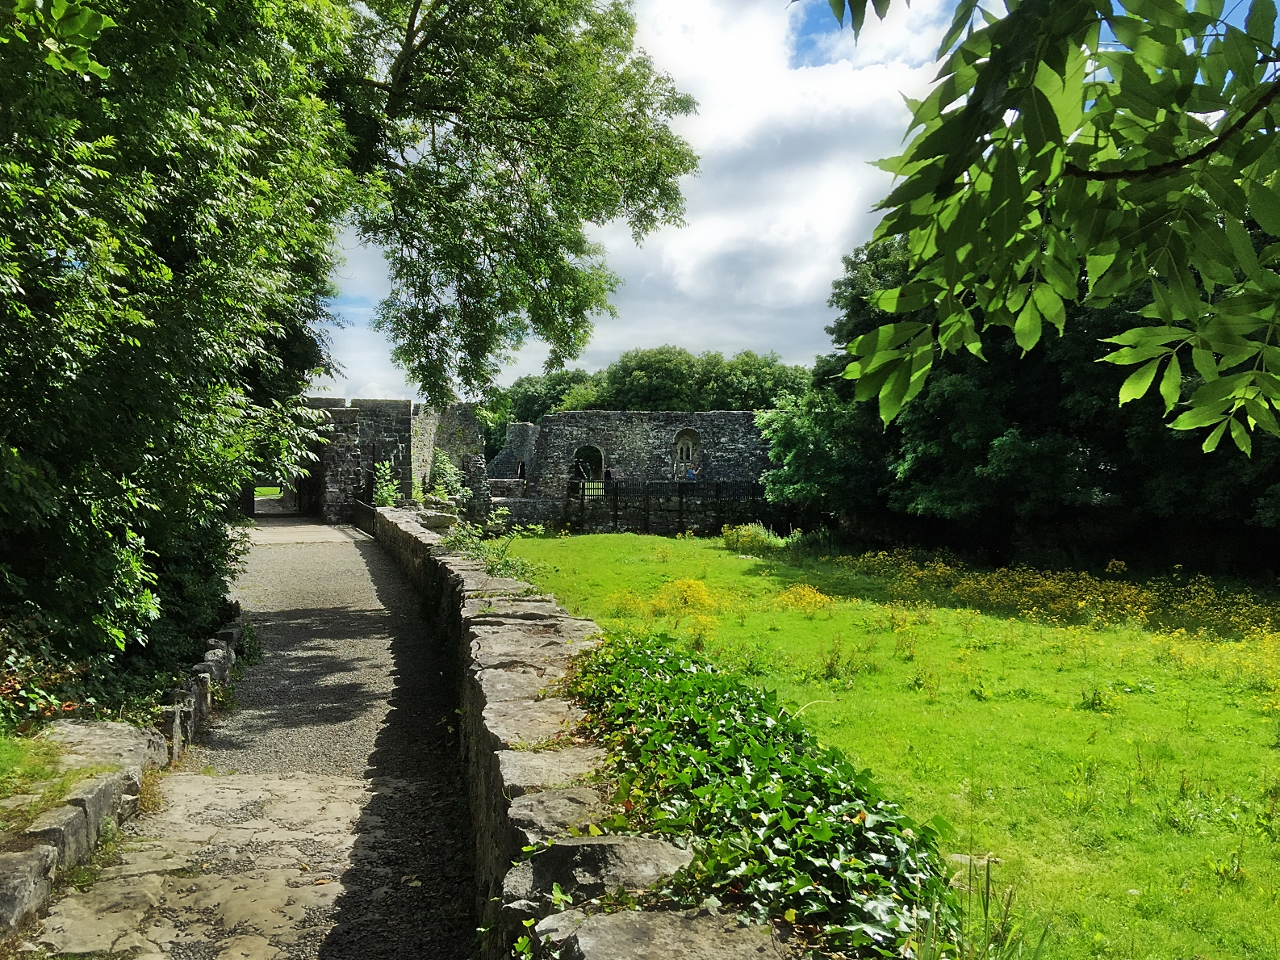 Aughnanure Castle in County Galway, Ireland